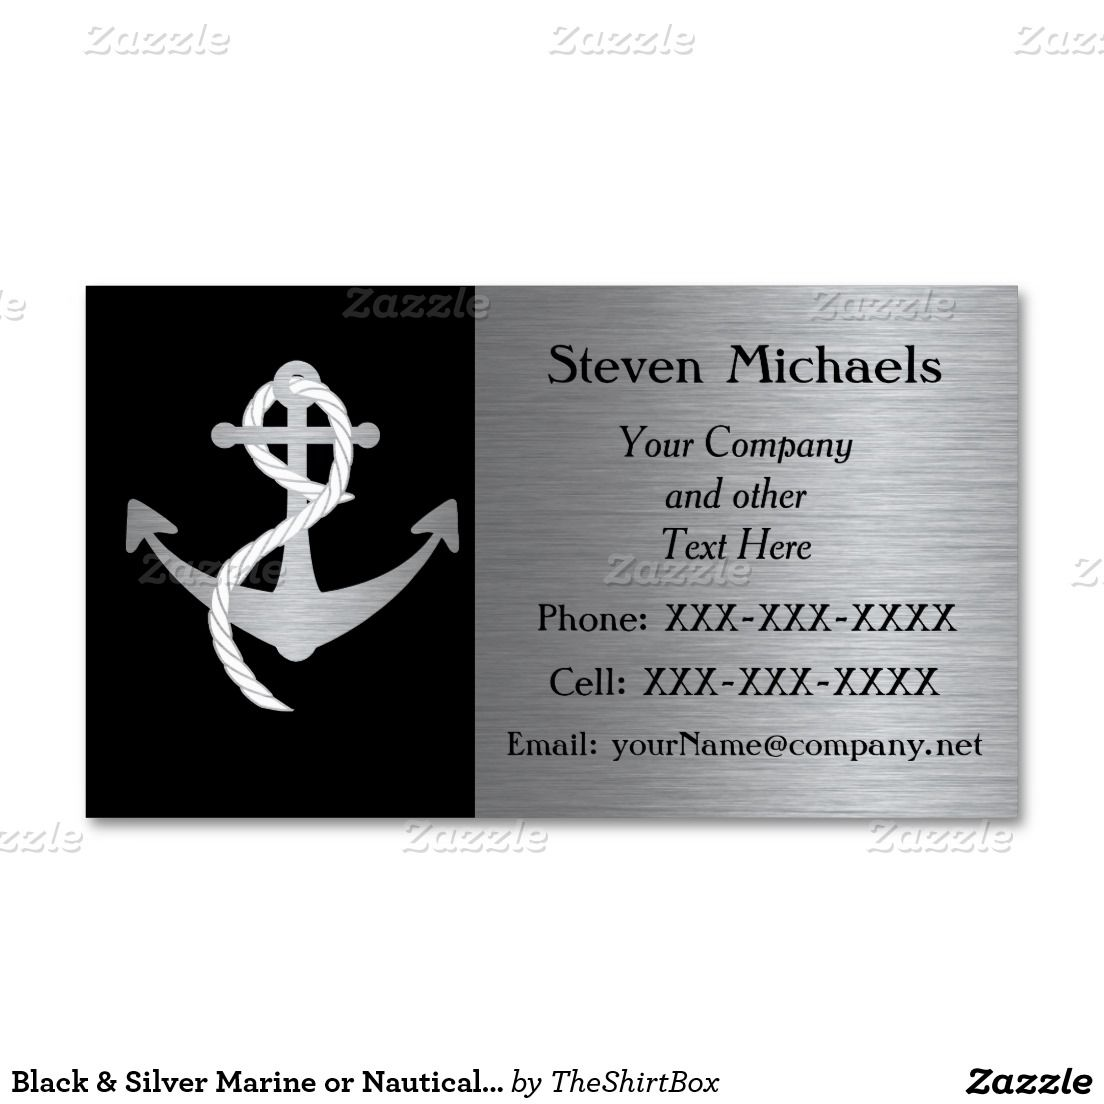 Black & Silver Marine or Nautical Business Card | Nautical Business ...